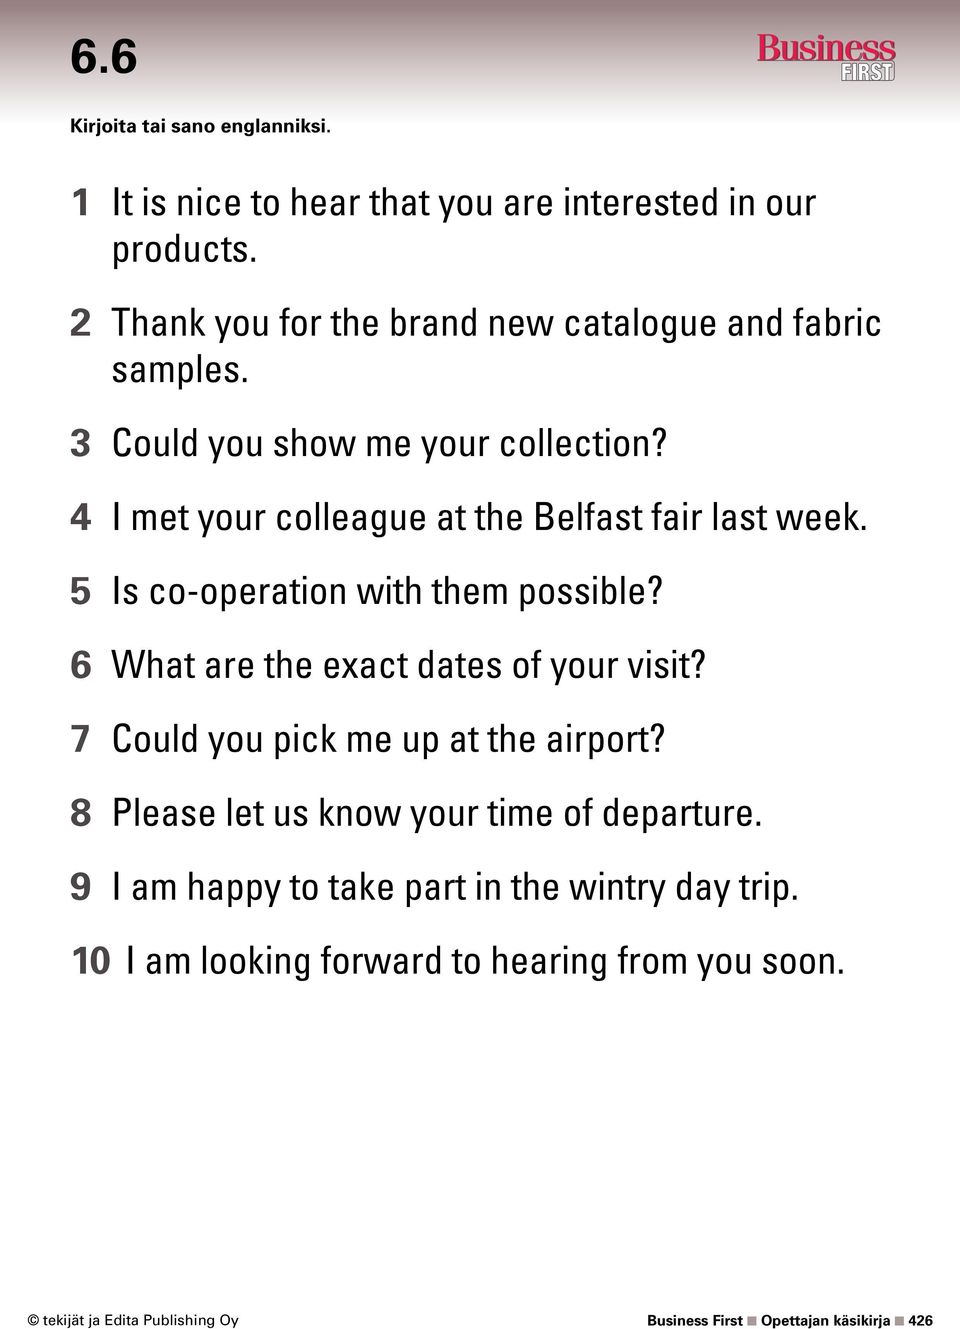 4 I met your colleague at the Belfast fair last week. 5 Is co-operation with them possible? 6 What are the exact dates of your visit?